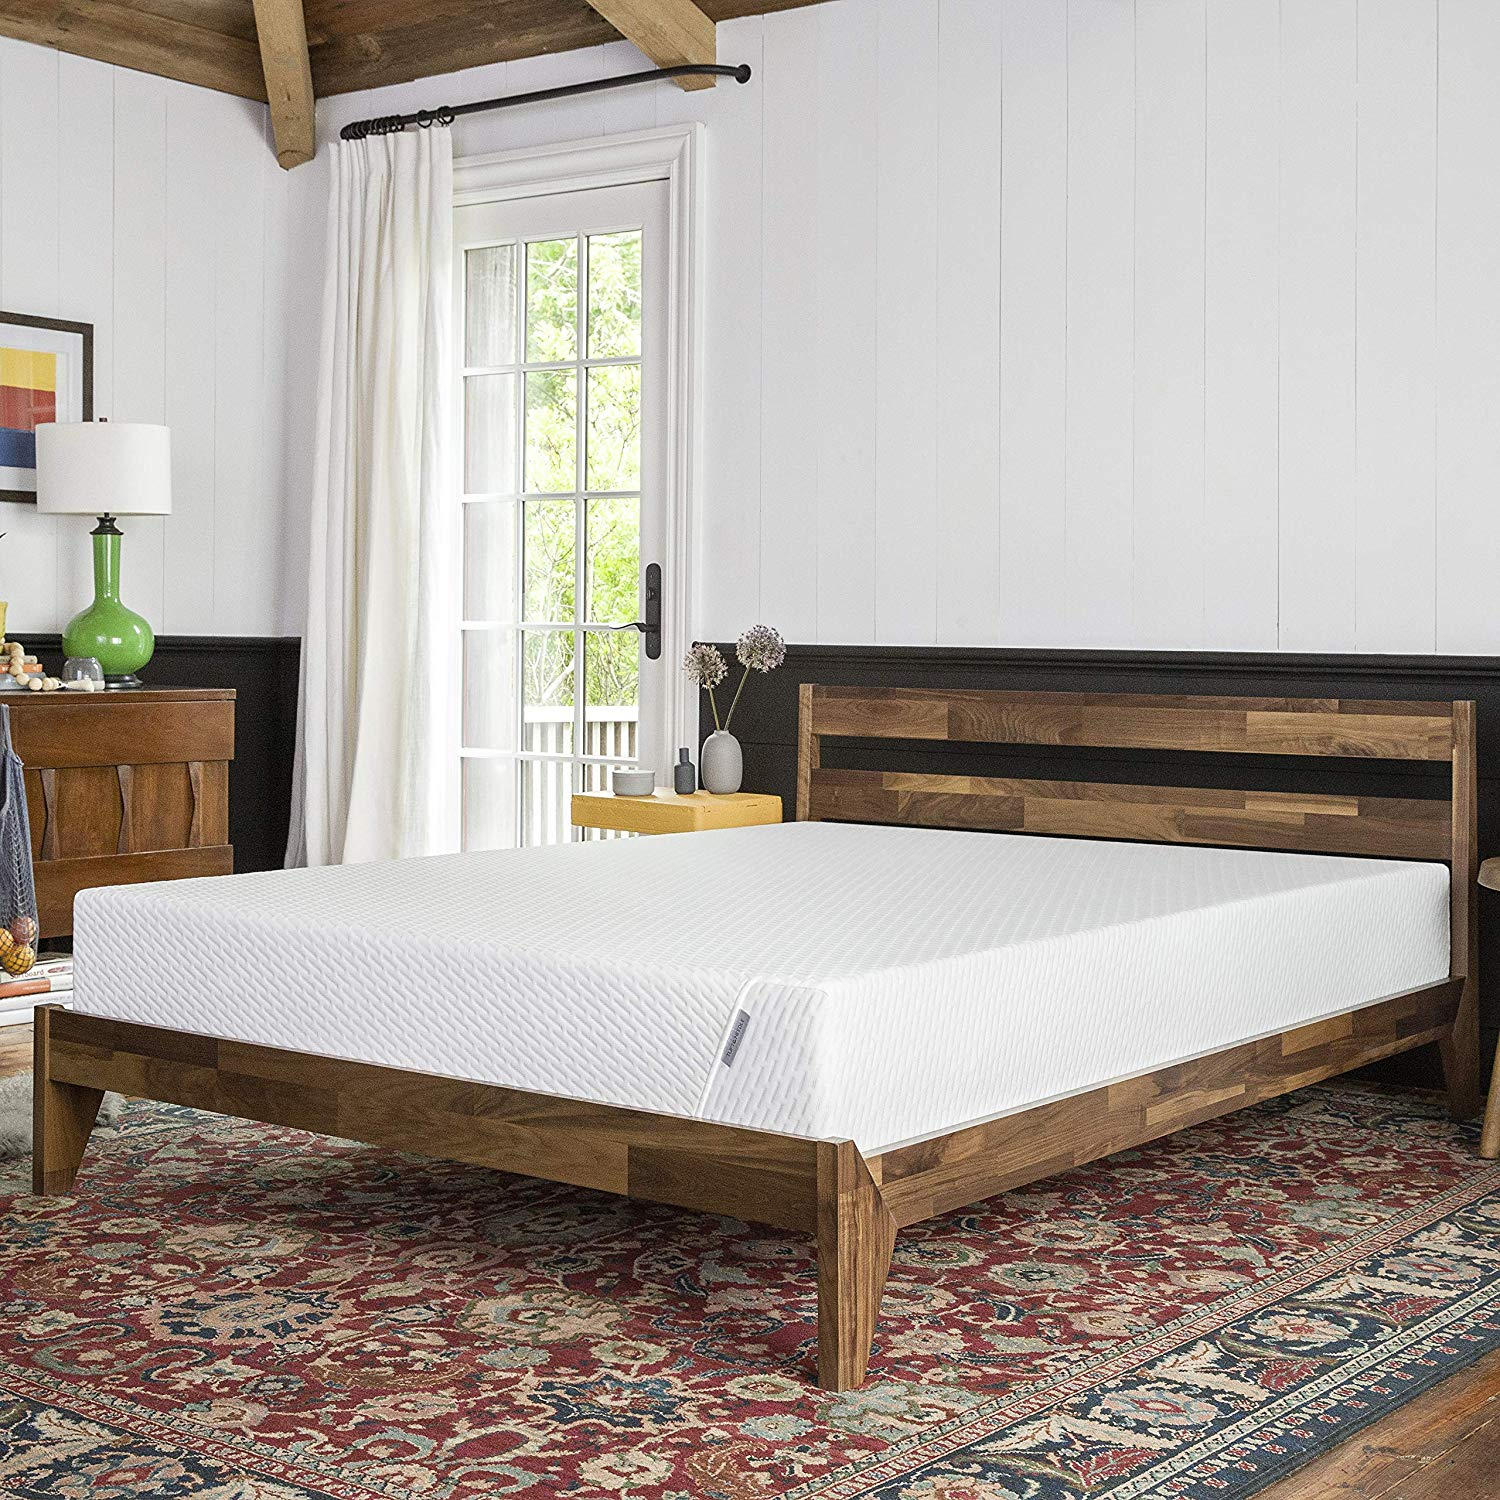 Tuft & Needle Adaptive Foam Mattress Review